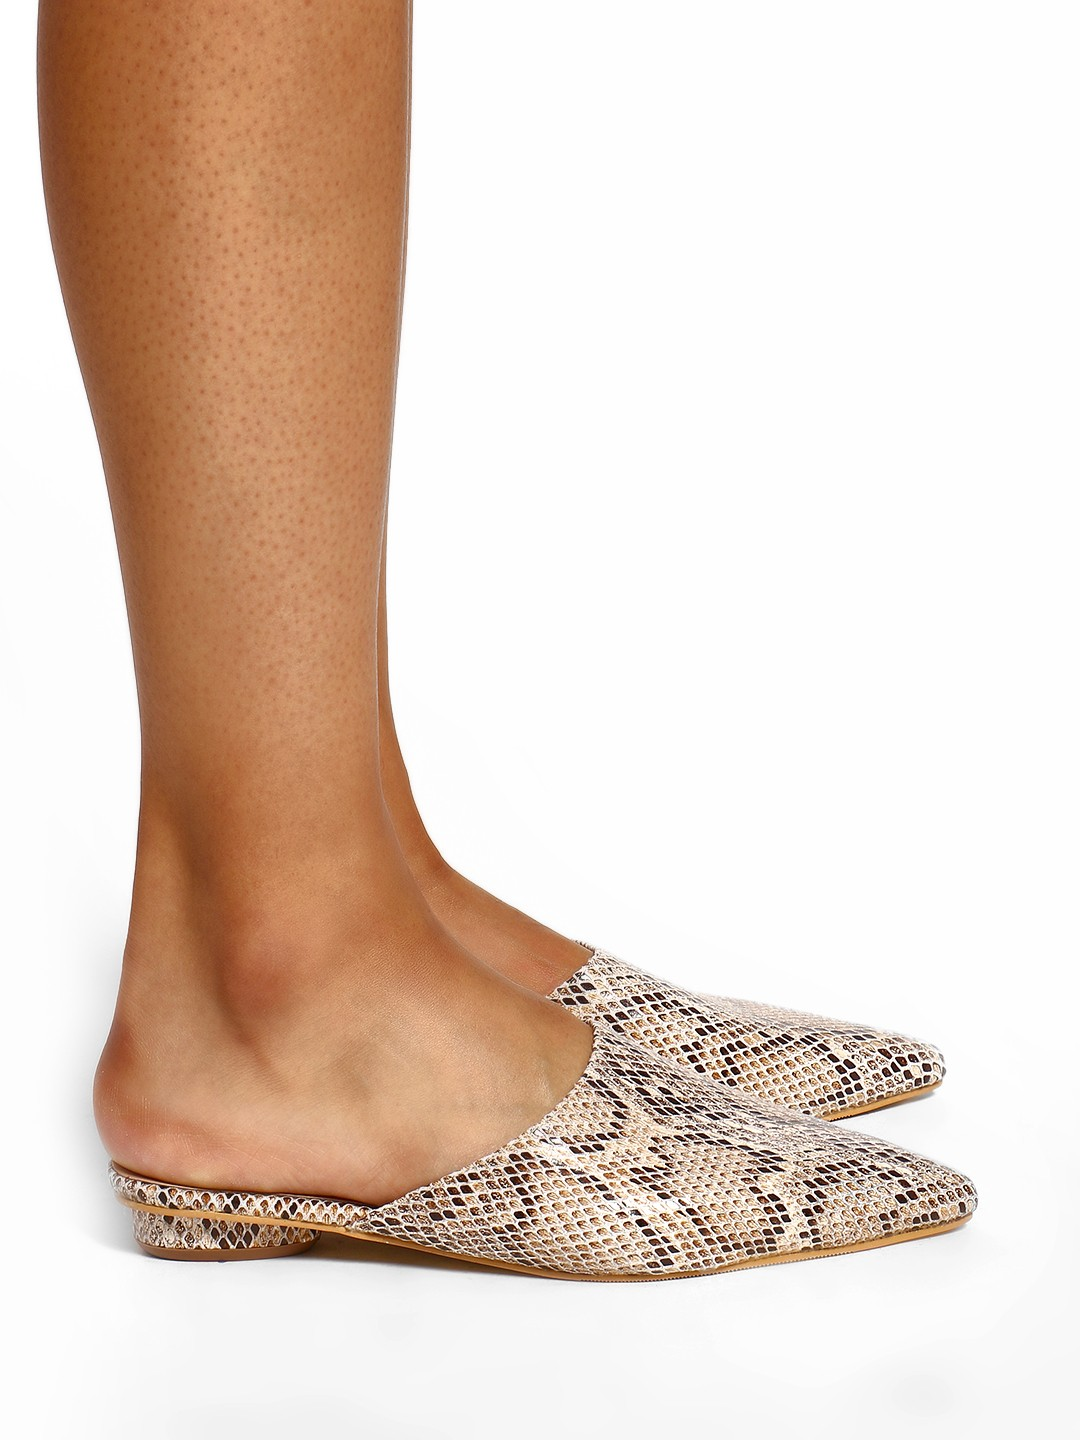 Sole Story Brown Snake Print Flat Mules 1